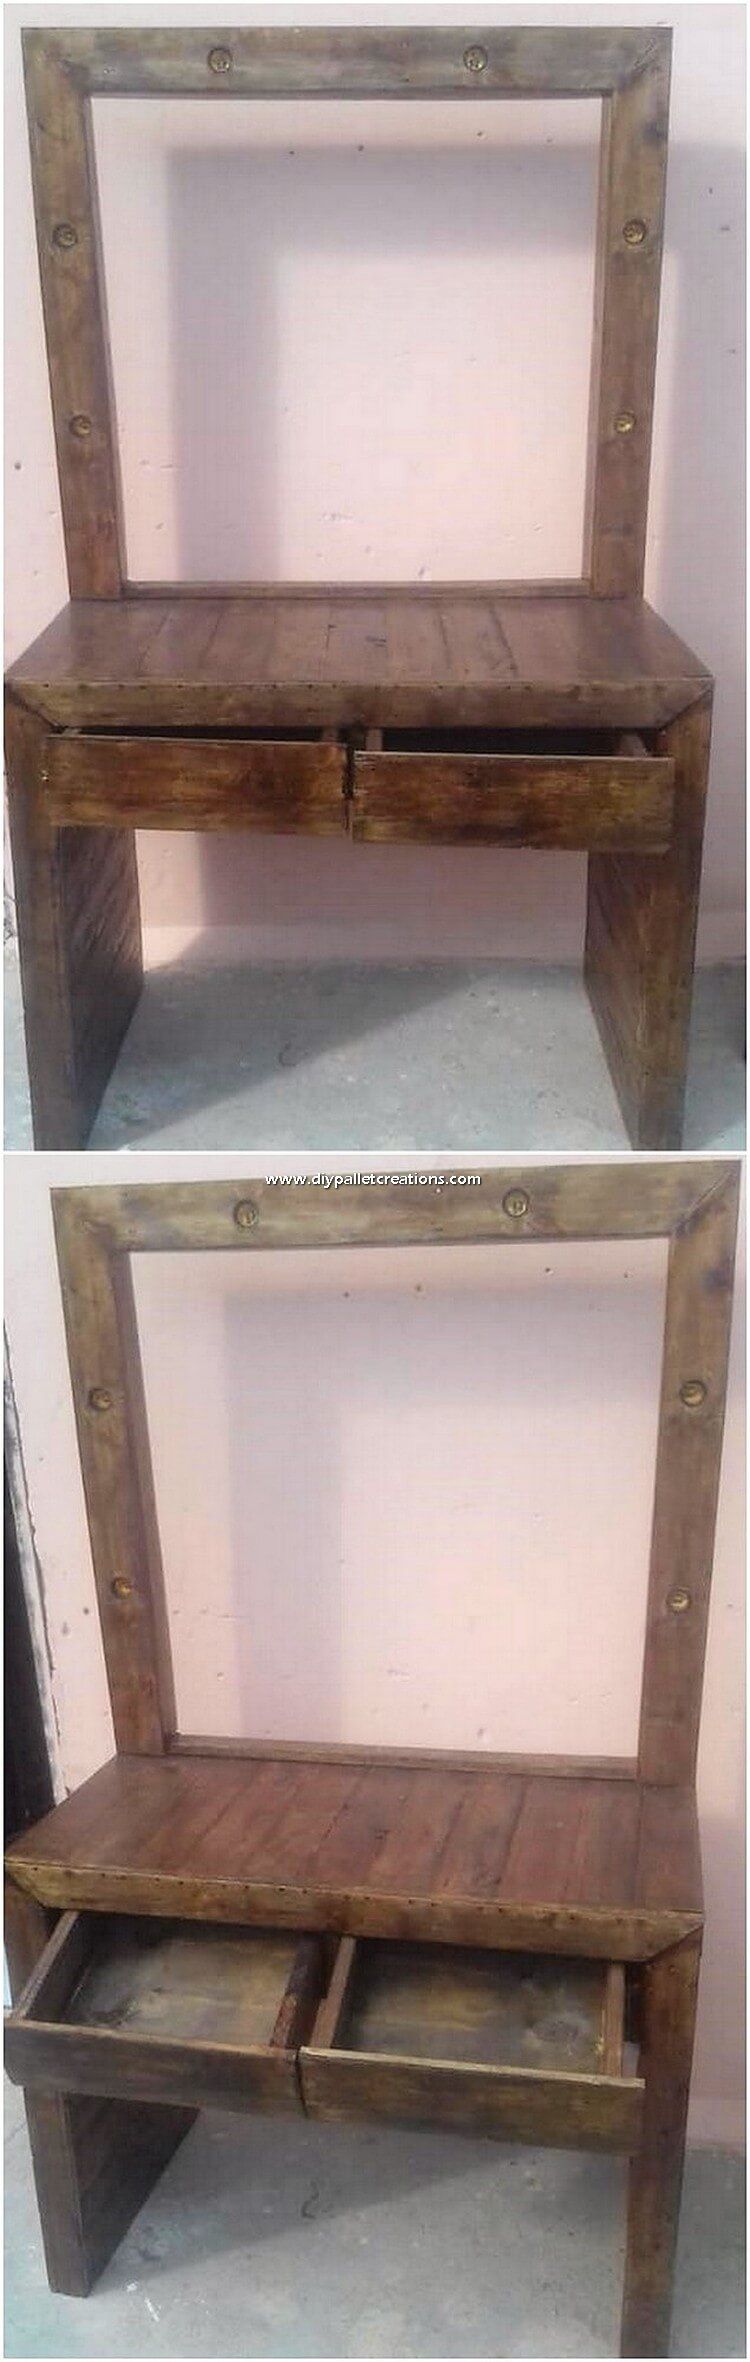 Pallet Dressing Table with Drawers